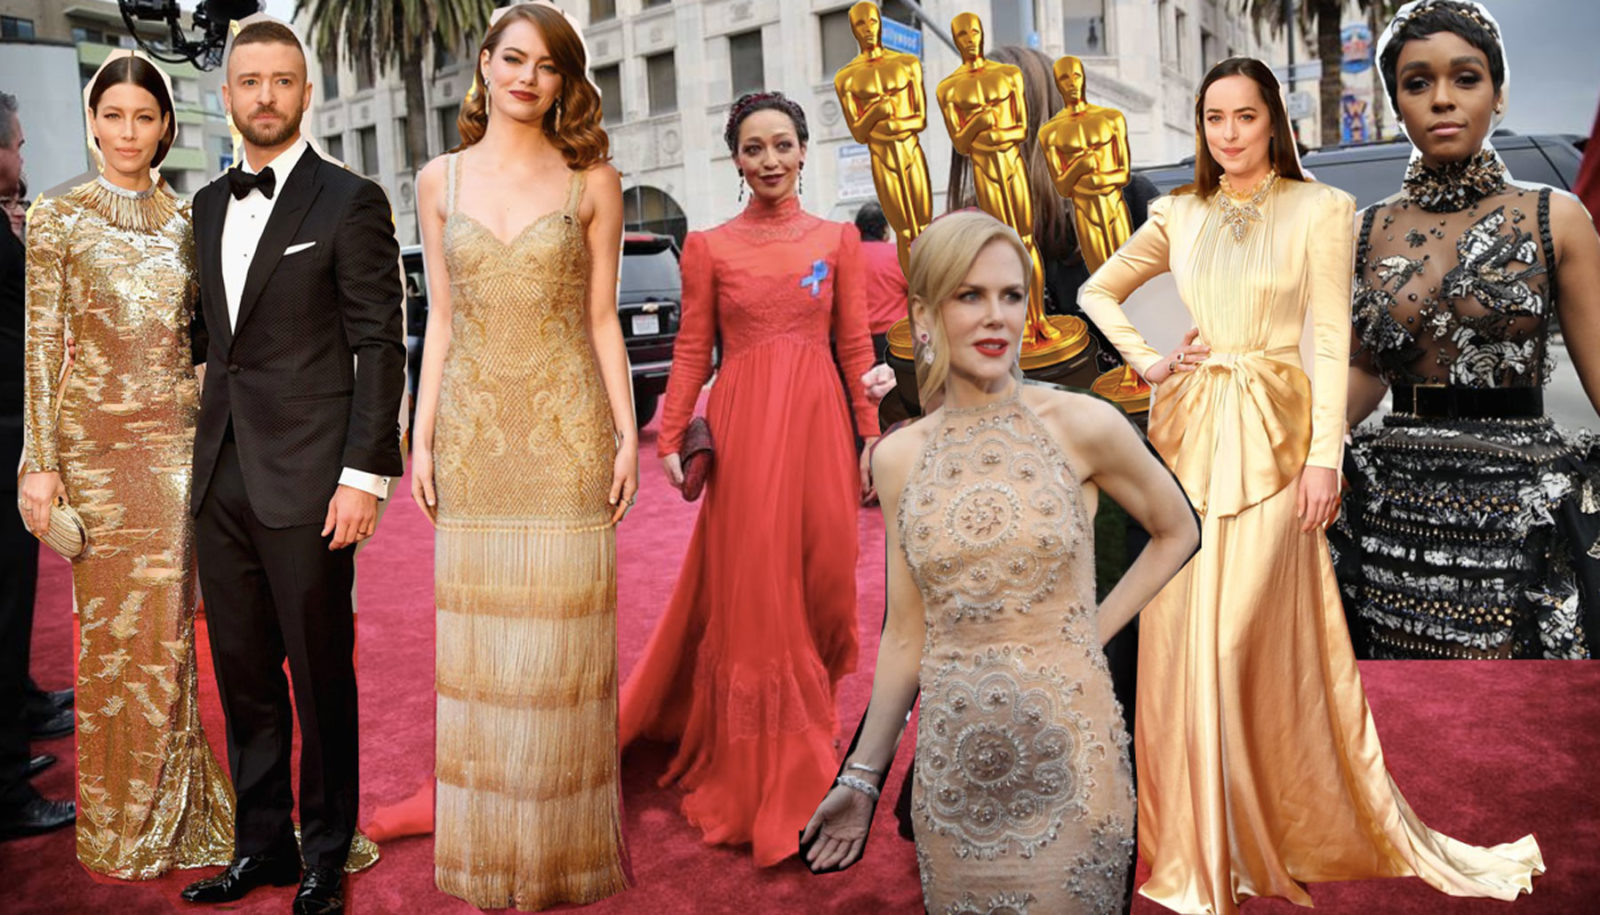 Coleen gray as well Jacques rivette further Anna Safroncik Audrey Hepburn E Il Mio Modello as well Rosie Huntington Whiteley Jason Statham Vanity Fair Oscars Party 2017 02 furthermore 2018 Women In Film Pre Oscar Cocktail Party Best Dressed Batch 2. on oscar 2017 red carpet live